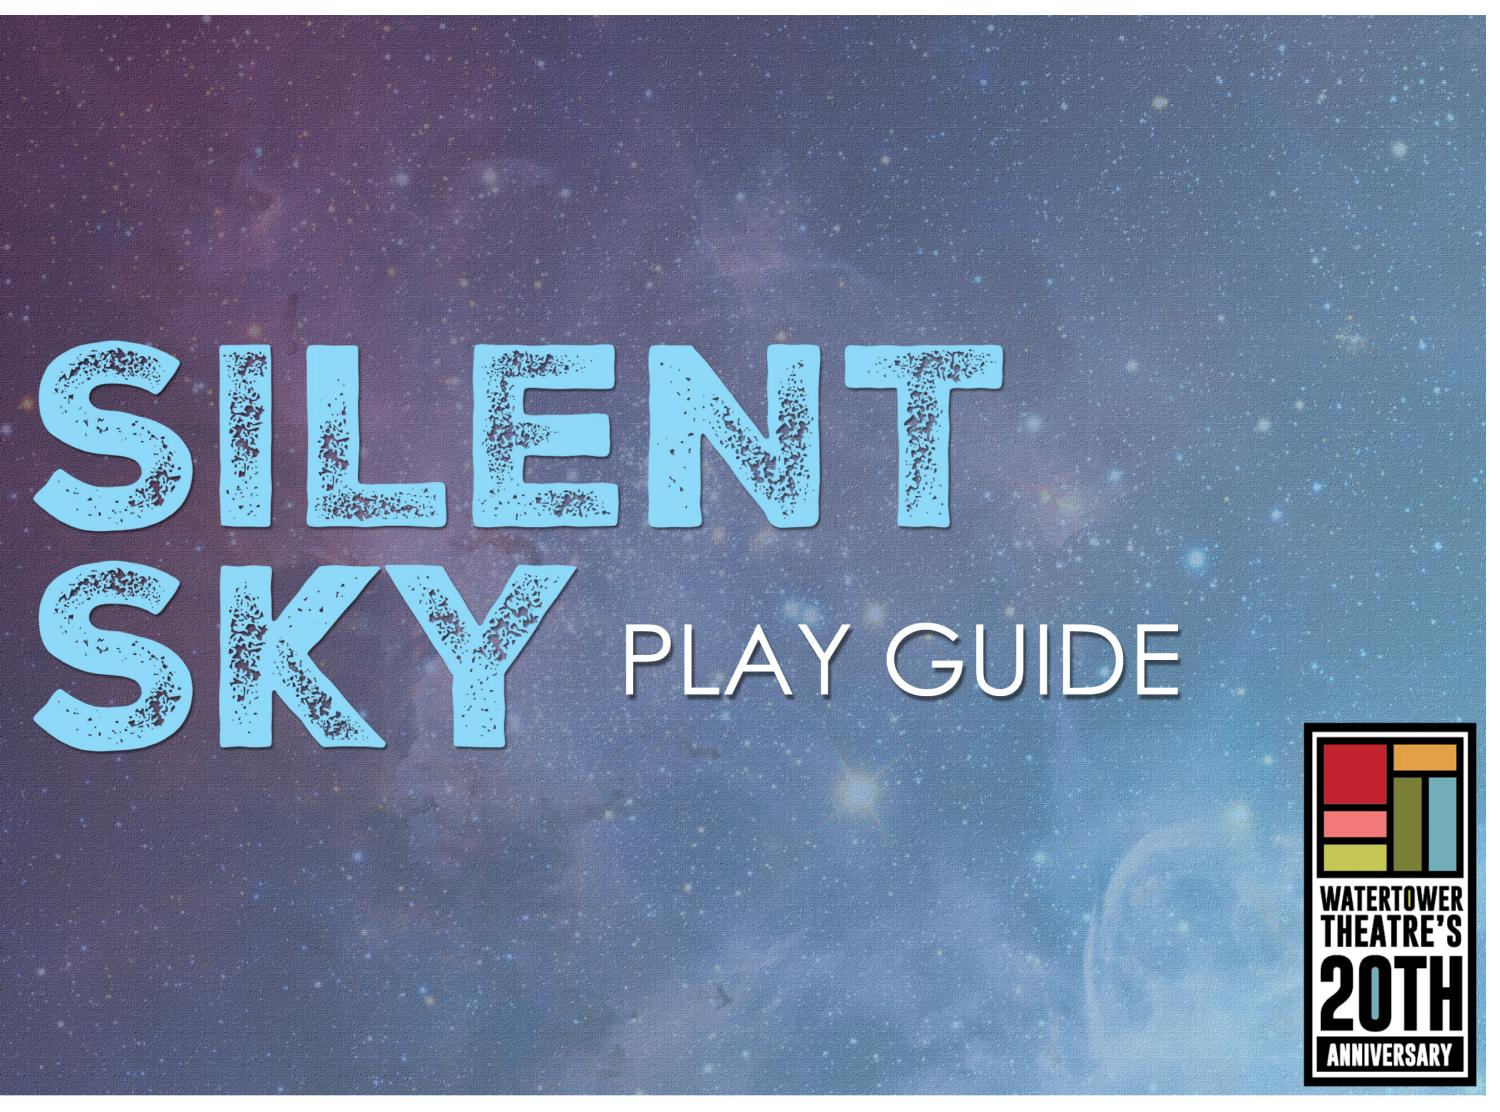 Theater review: Silent Sky reaches heights - SFGate